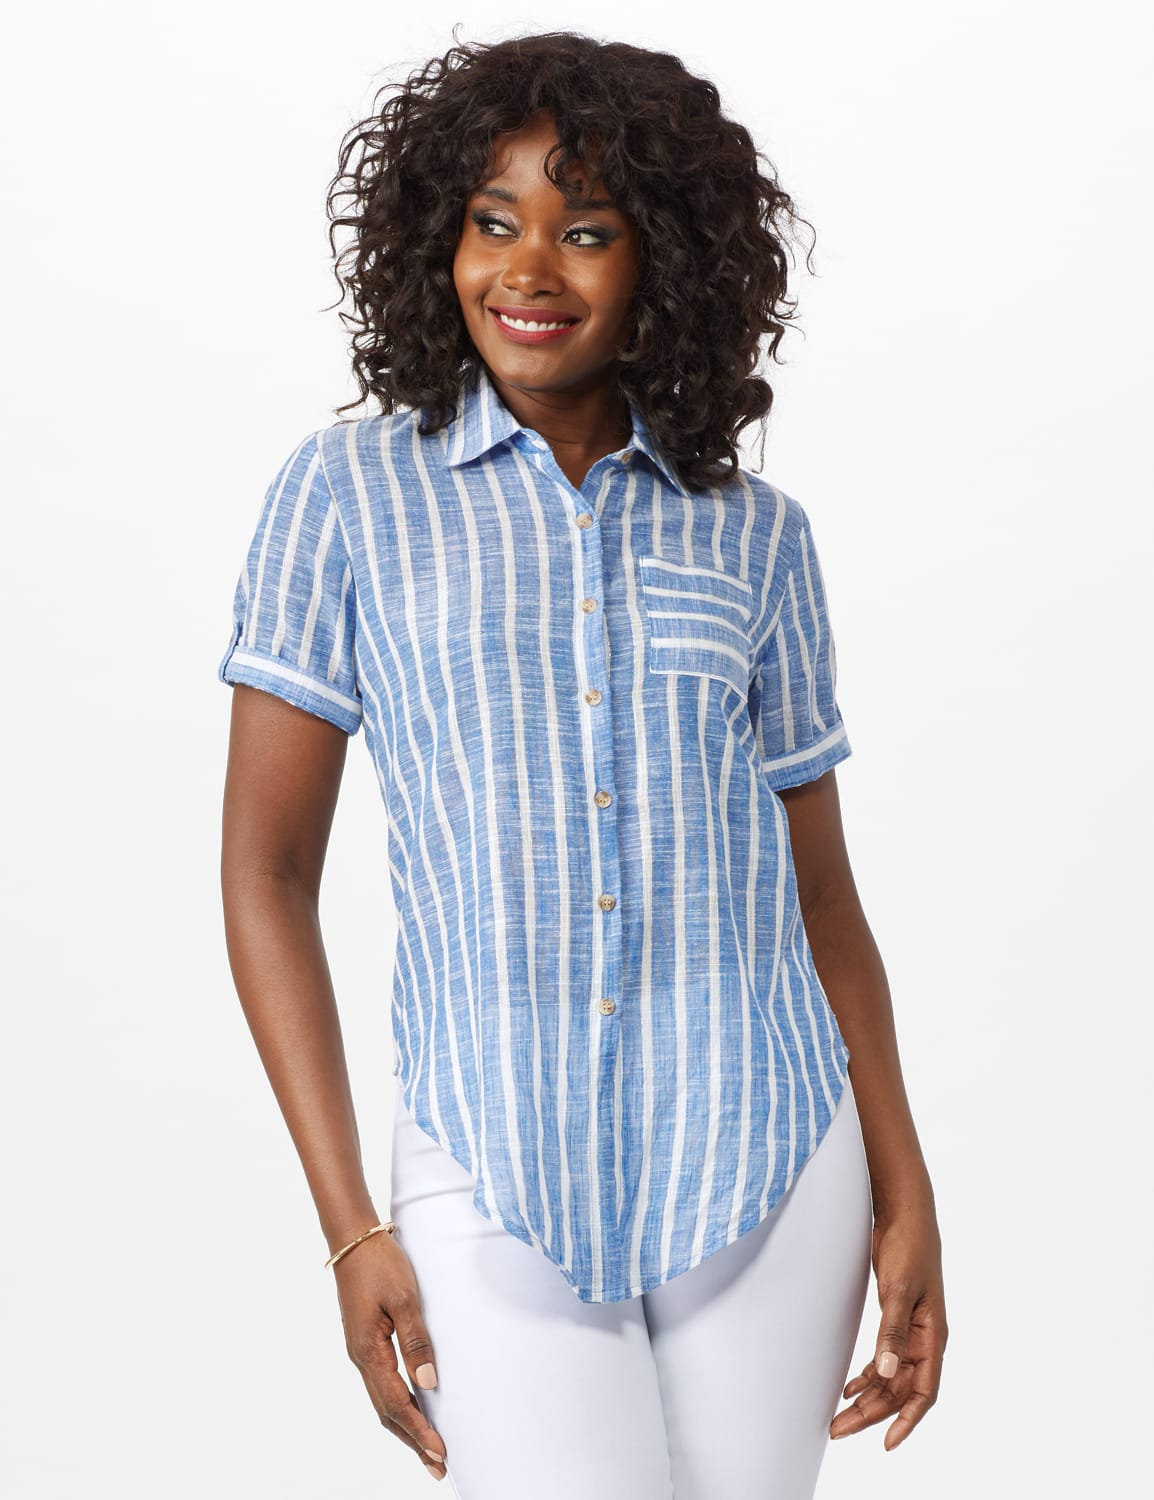 Dressbarn Lurex Stripe 1 Pocket Shirt - Misses - Blue - Front